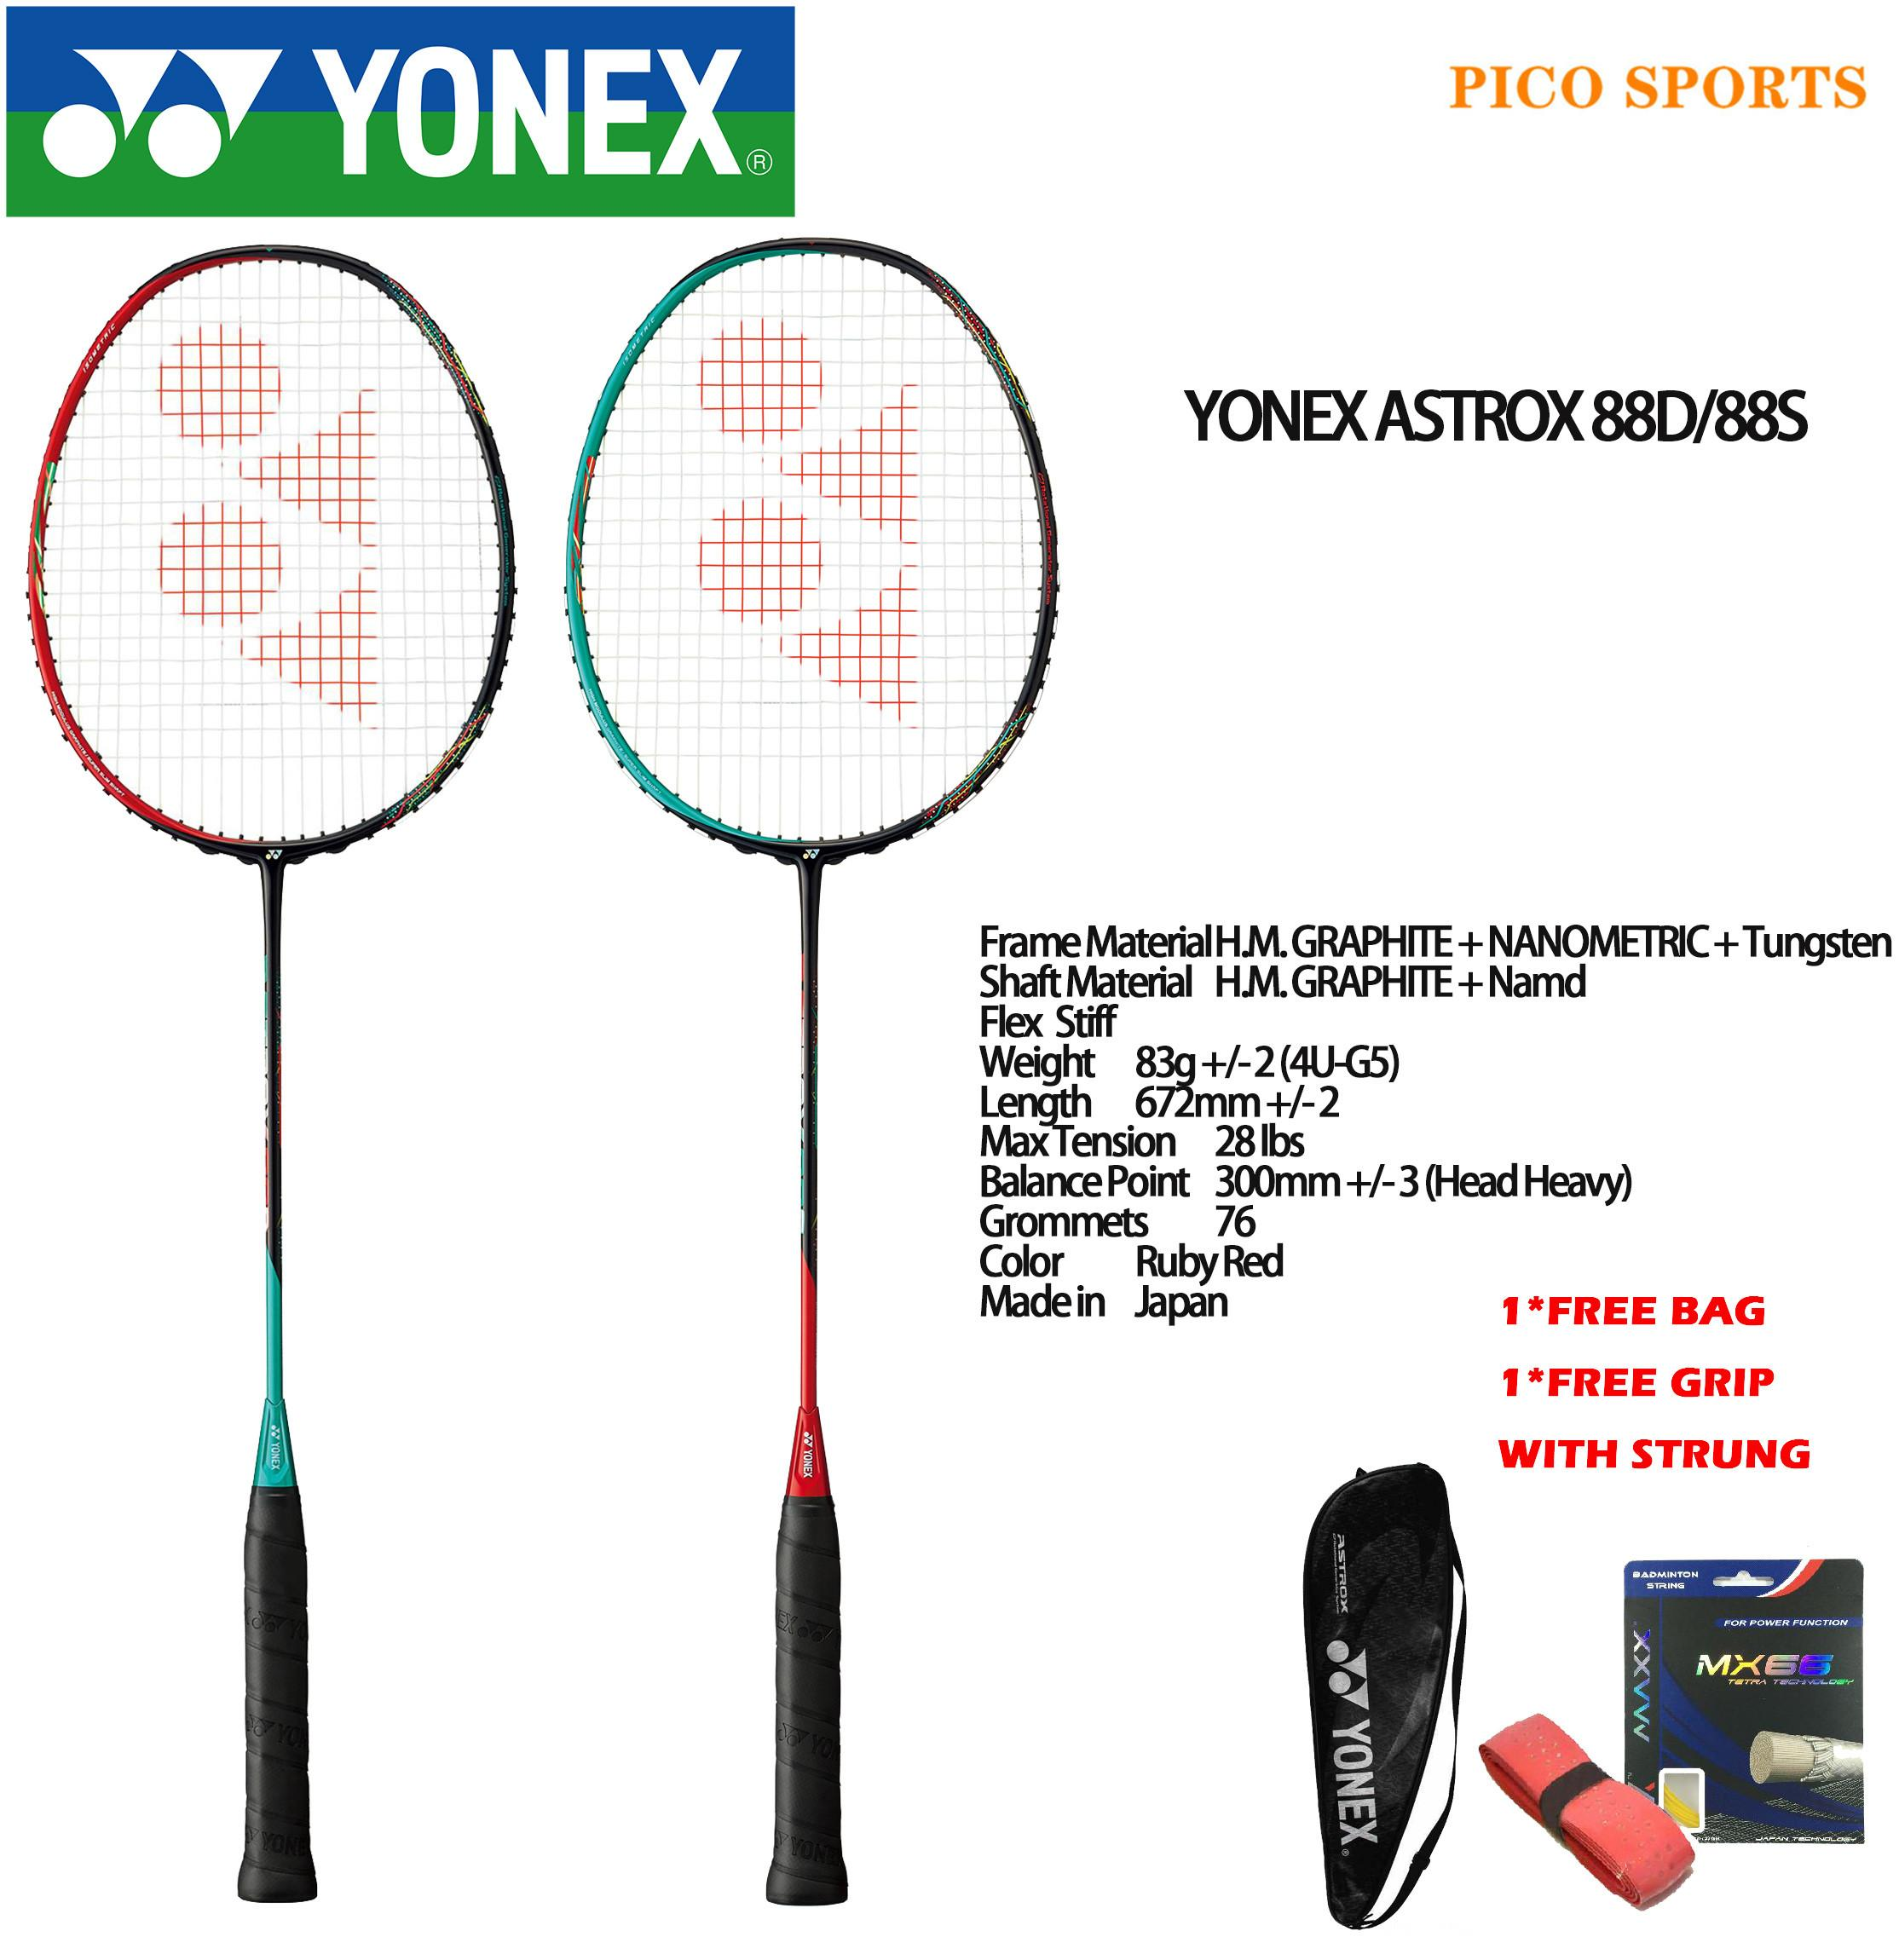 YY ASTROX 88 Badminton Racket Made in Japan Full Carbon Single Badminton  Racket High rebound Badminton Racket - intl